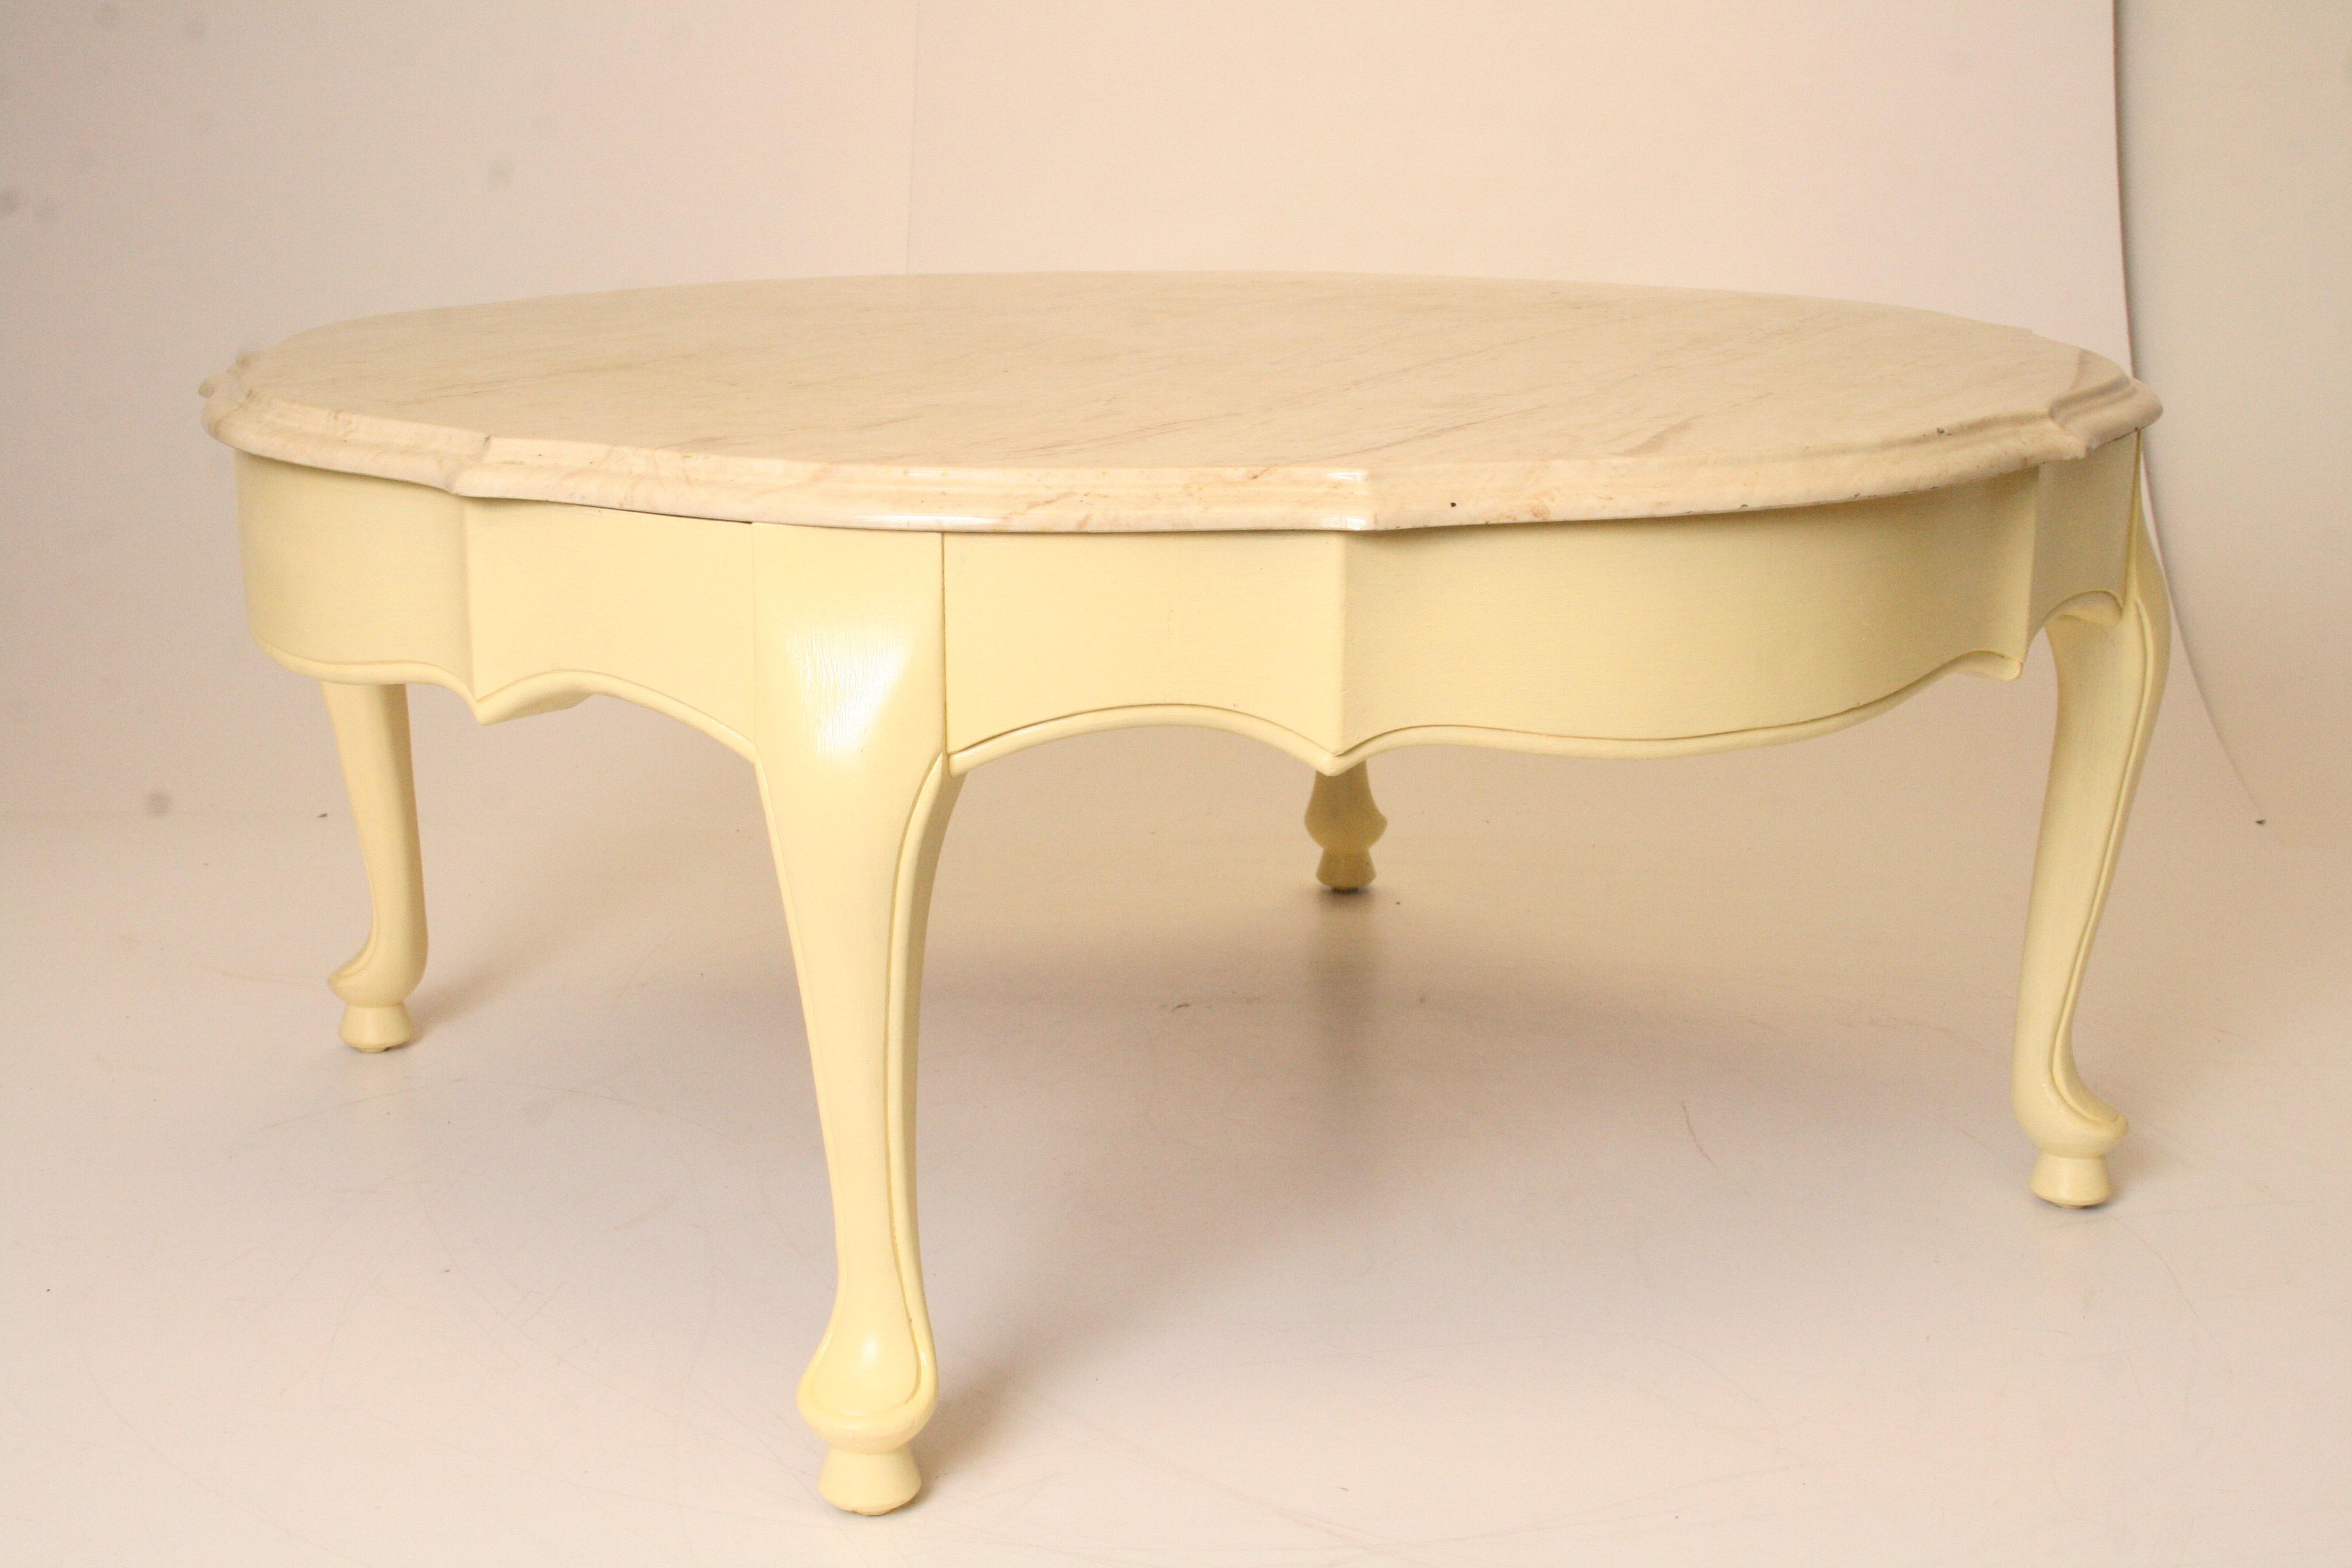 Vintage French Provincial Marble Top Round Coffee Table   Image 2 Of 11